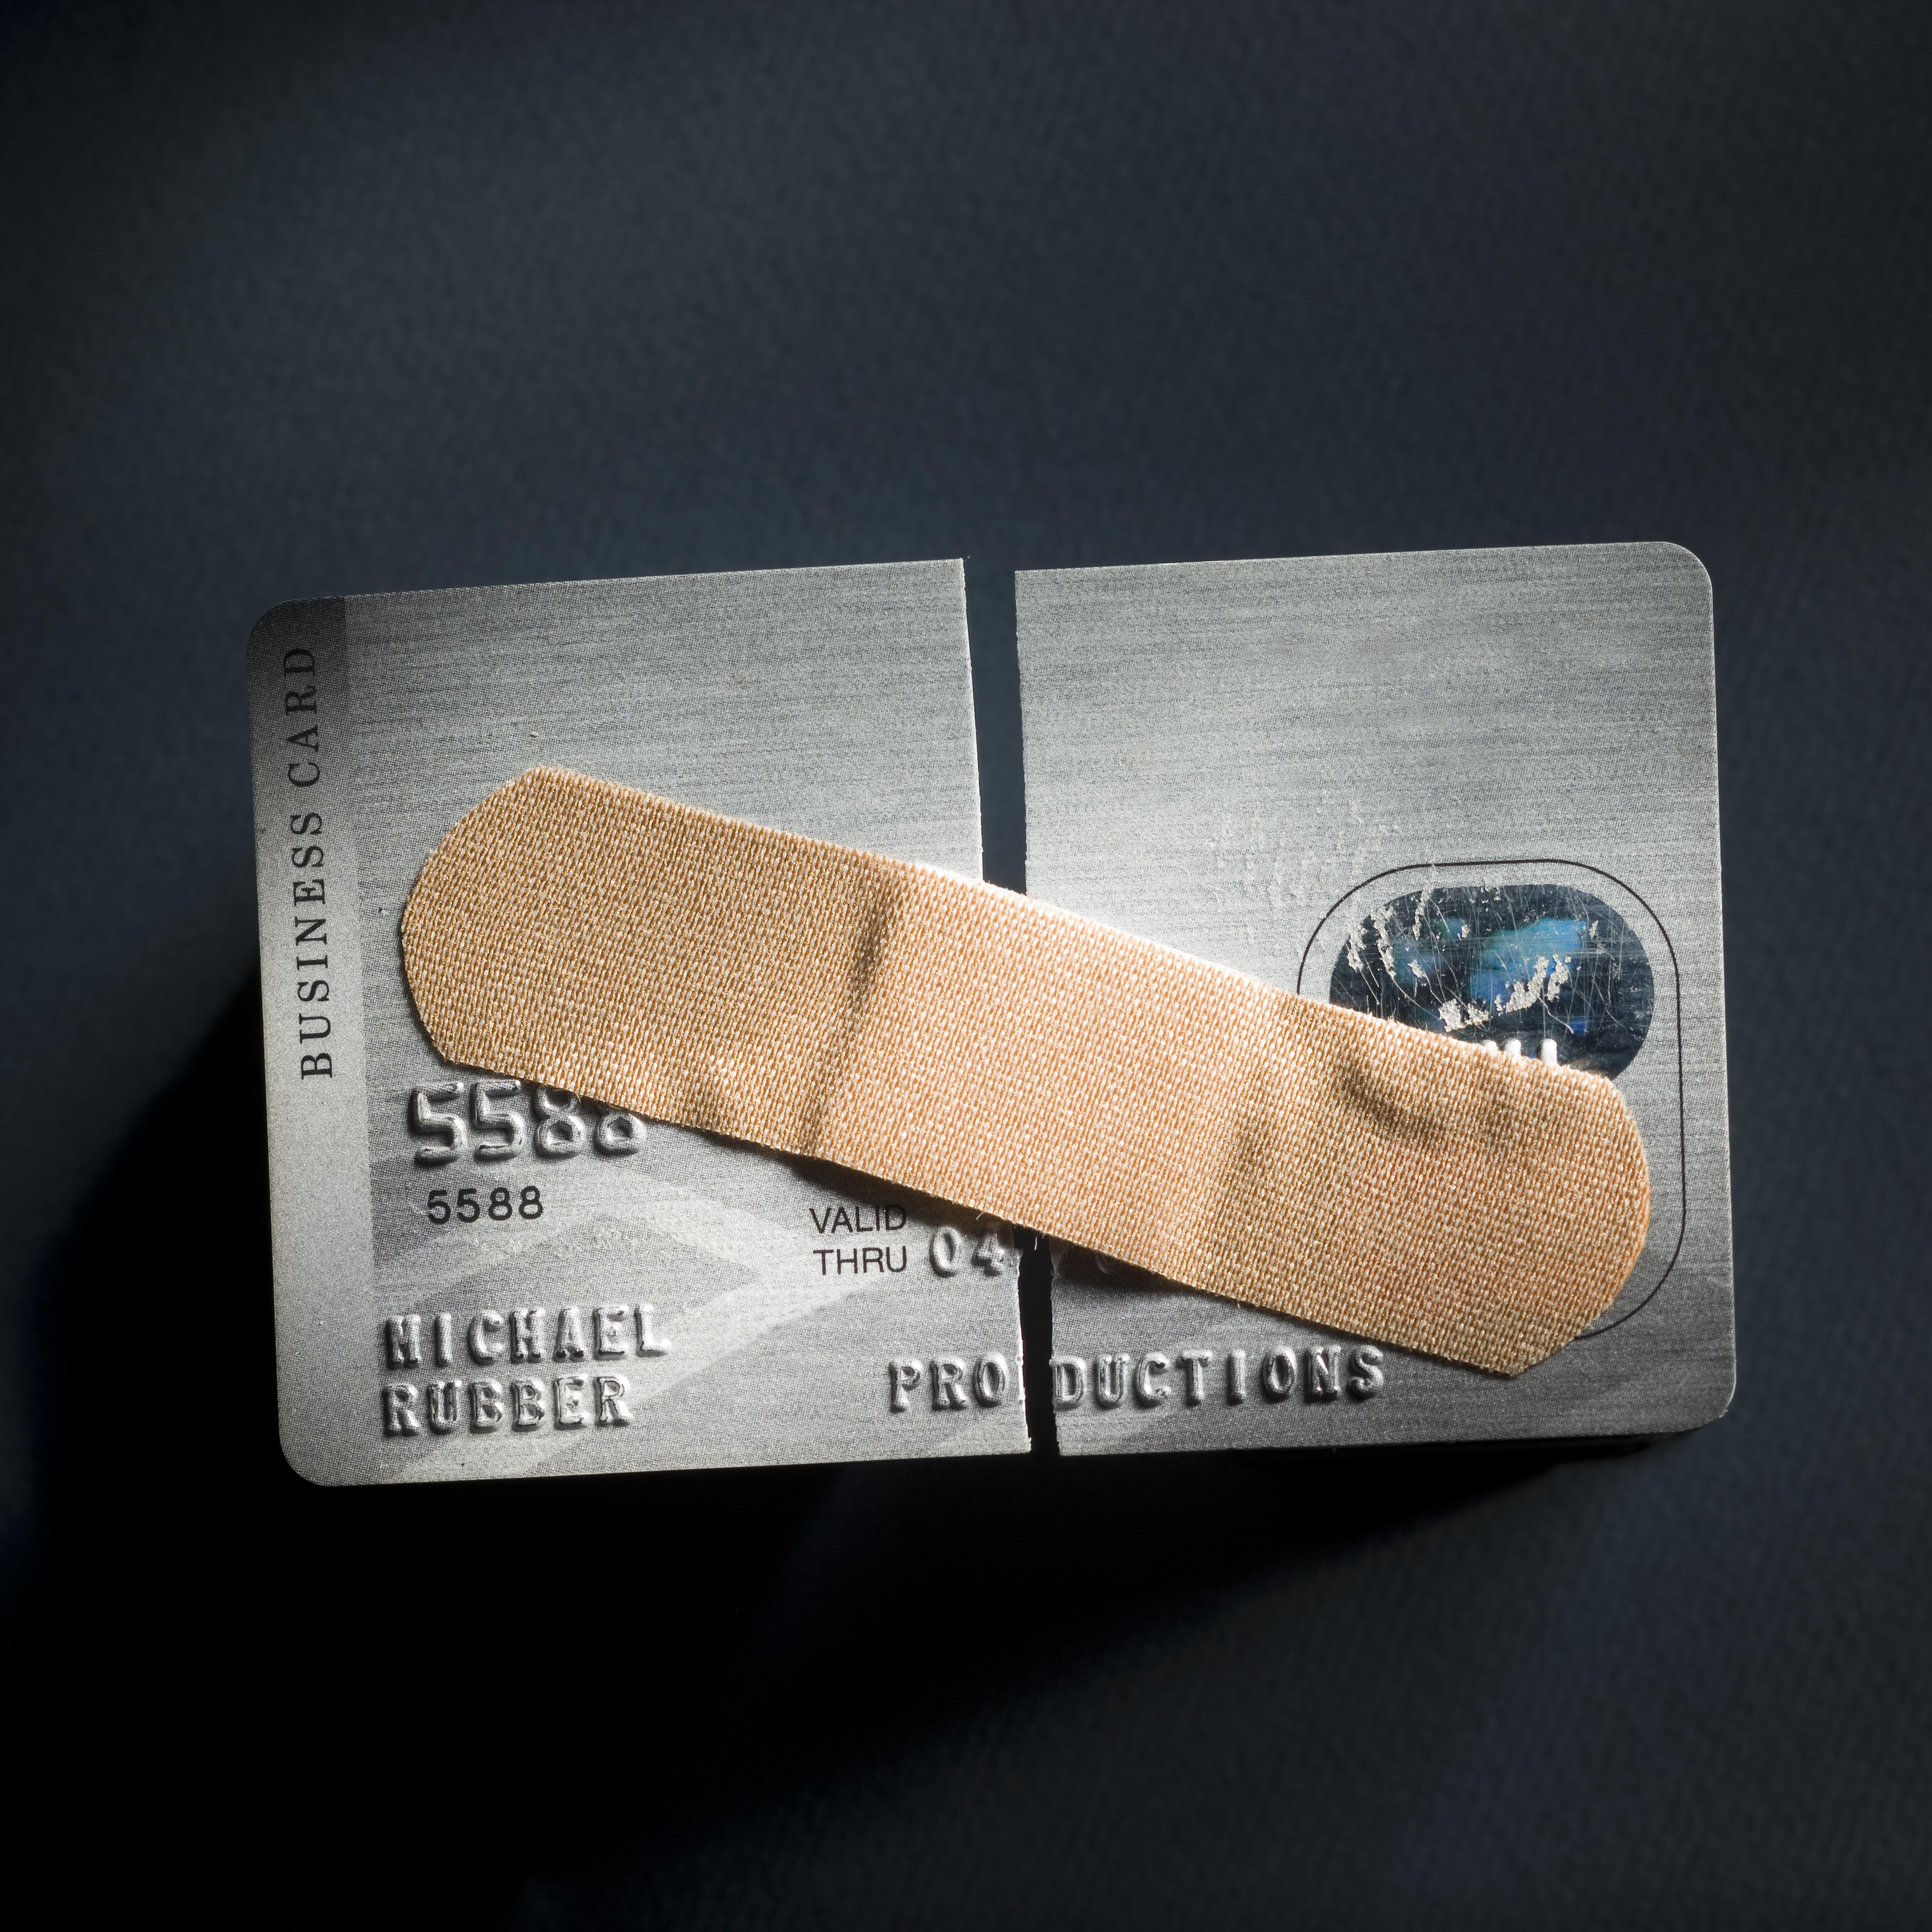 credit card cut in half with a band-aid holding it together